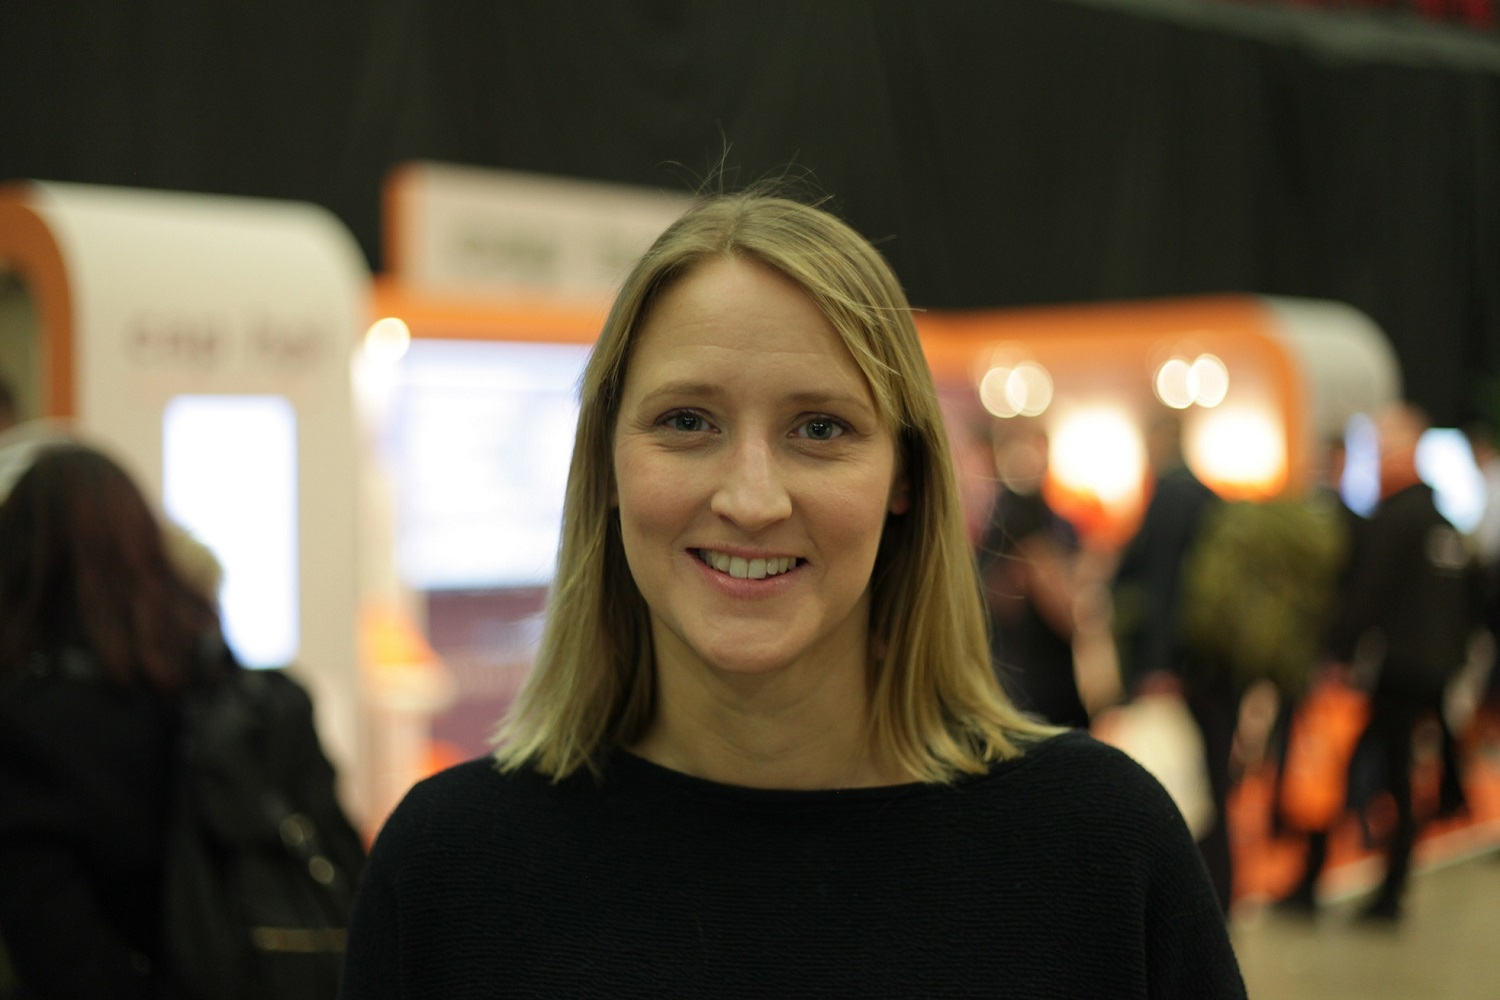 Herd founder Amy De-Balsi at Leeds Digital Job Fair 4.0